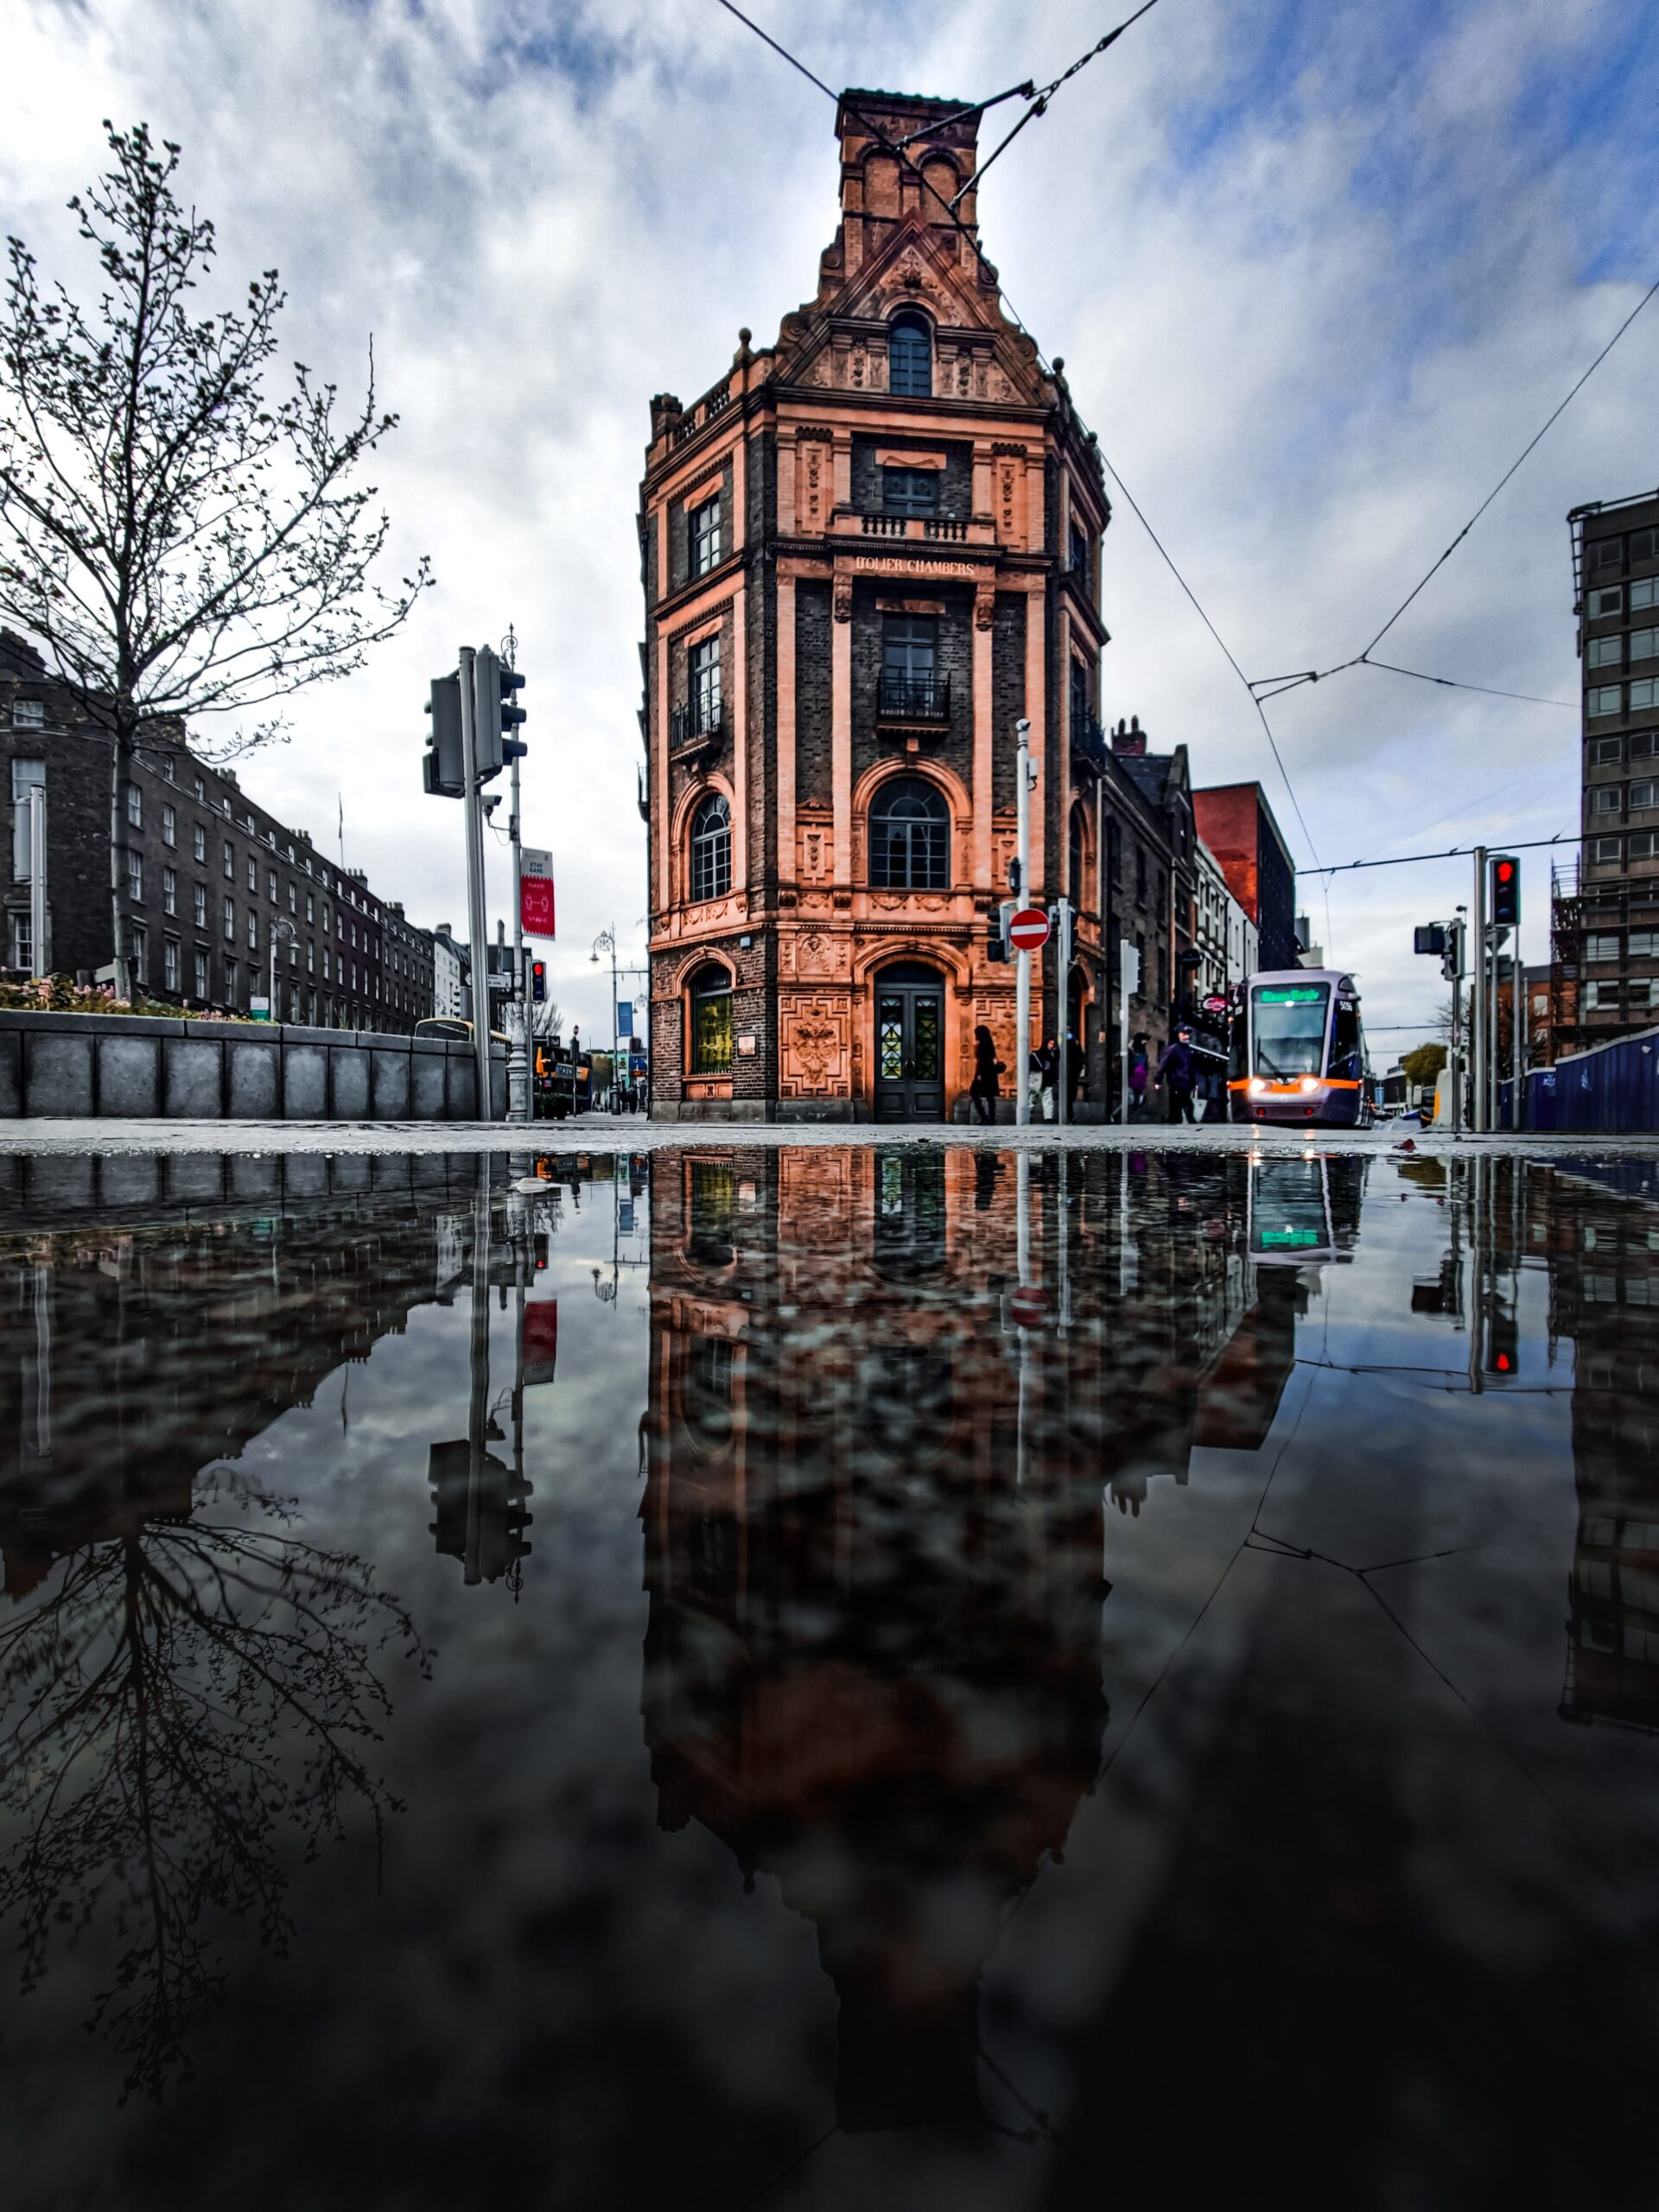 conor-luddy-Dublin city street level after rain with metro in frame-unsplash